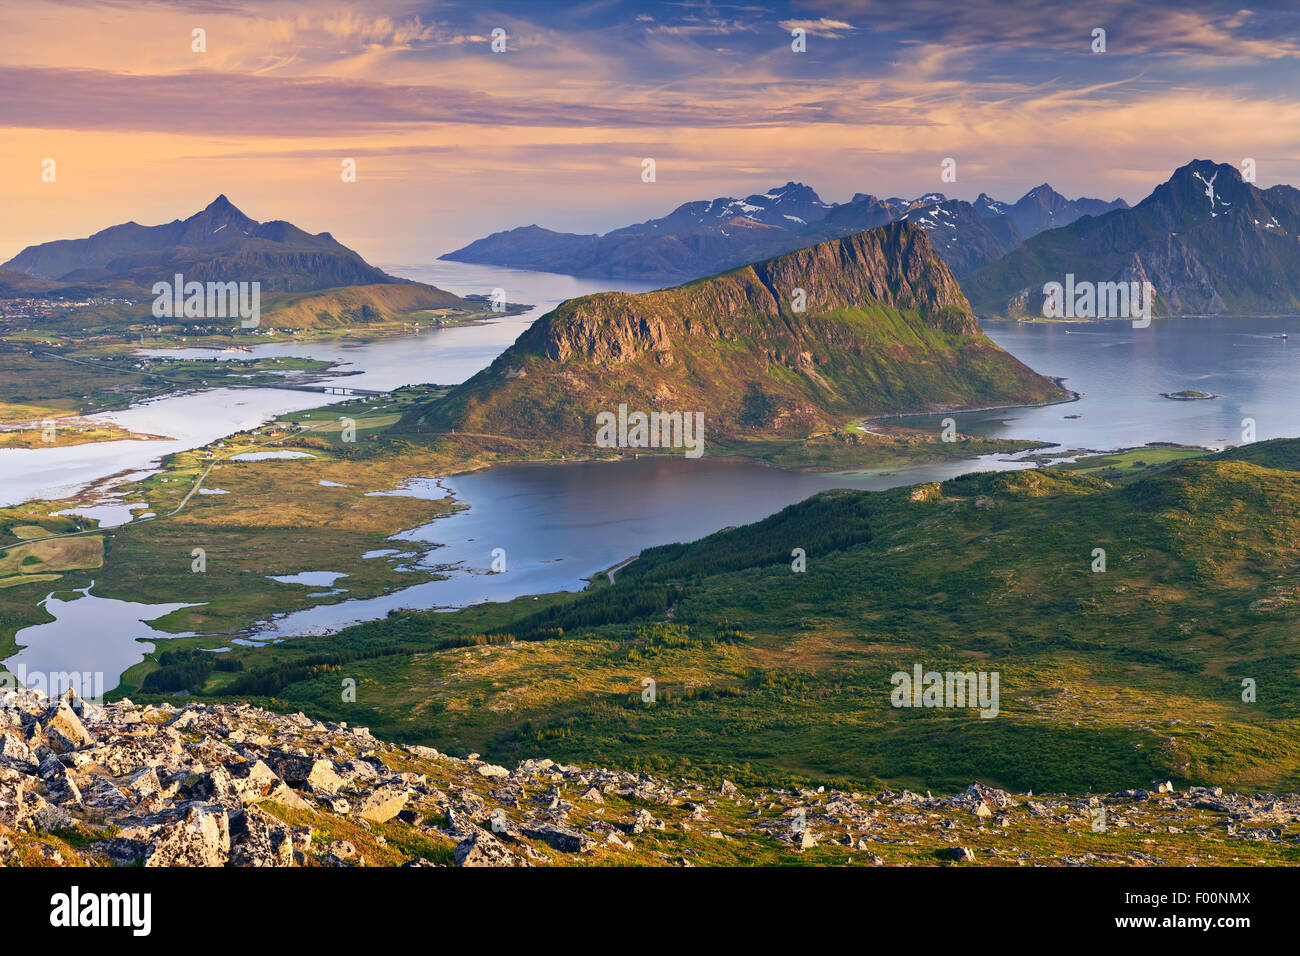 Norway. View of  Lofoten Islands, located in Norway, taken from Holadsmelen, during summer sunset. - Stock Image